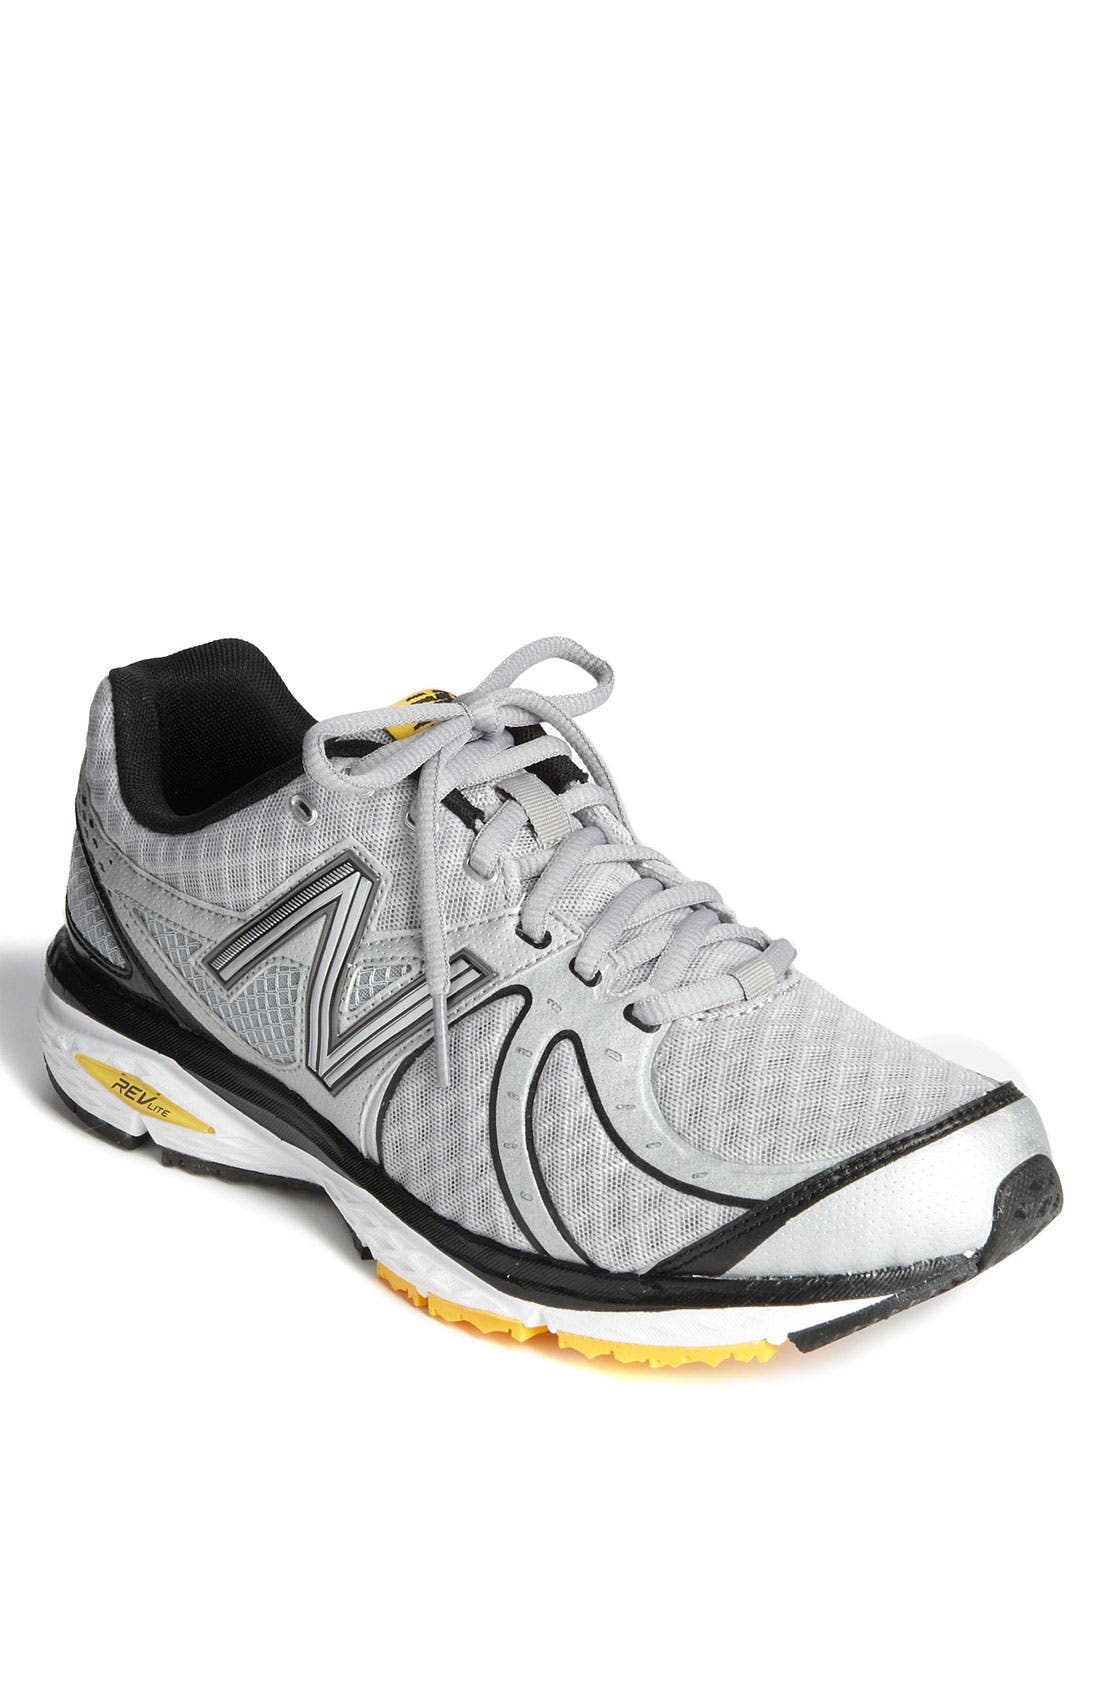 Alternate Image 1 Selected - New Balance '790' Running Shoe (Men)